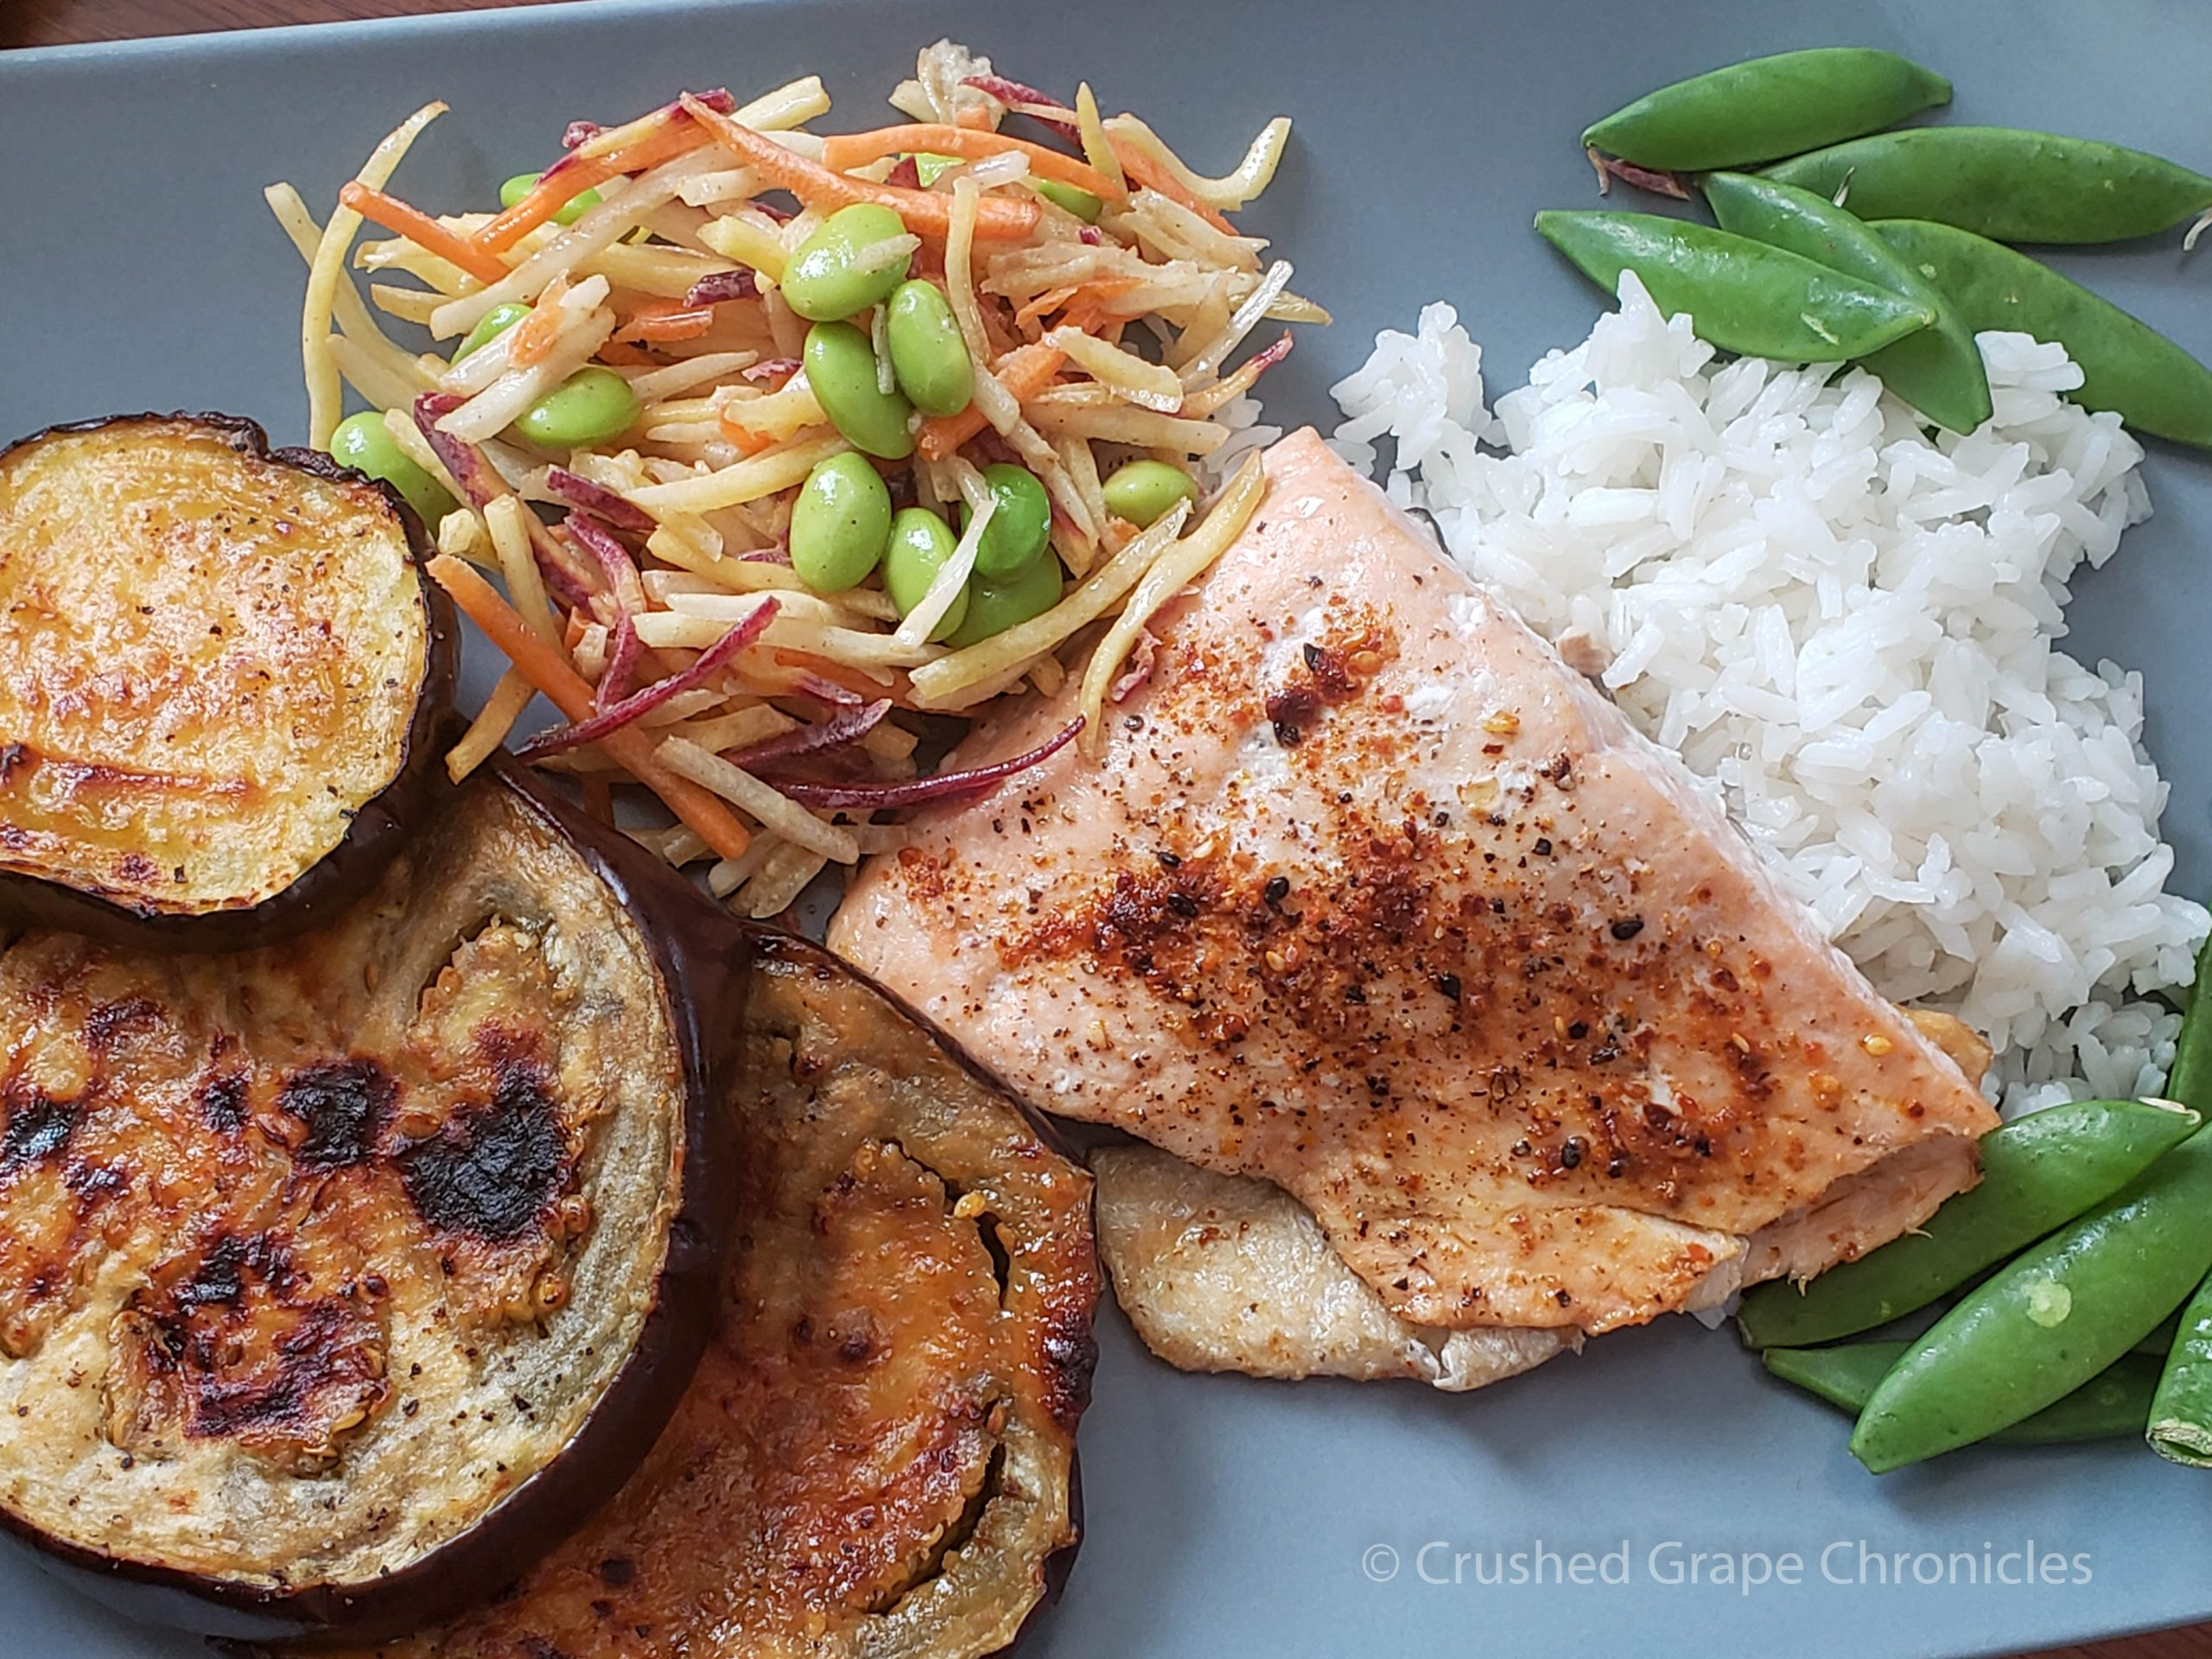 Roasted Togarashi salmon with miso-glazed eggplant from Sun Basket